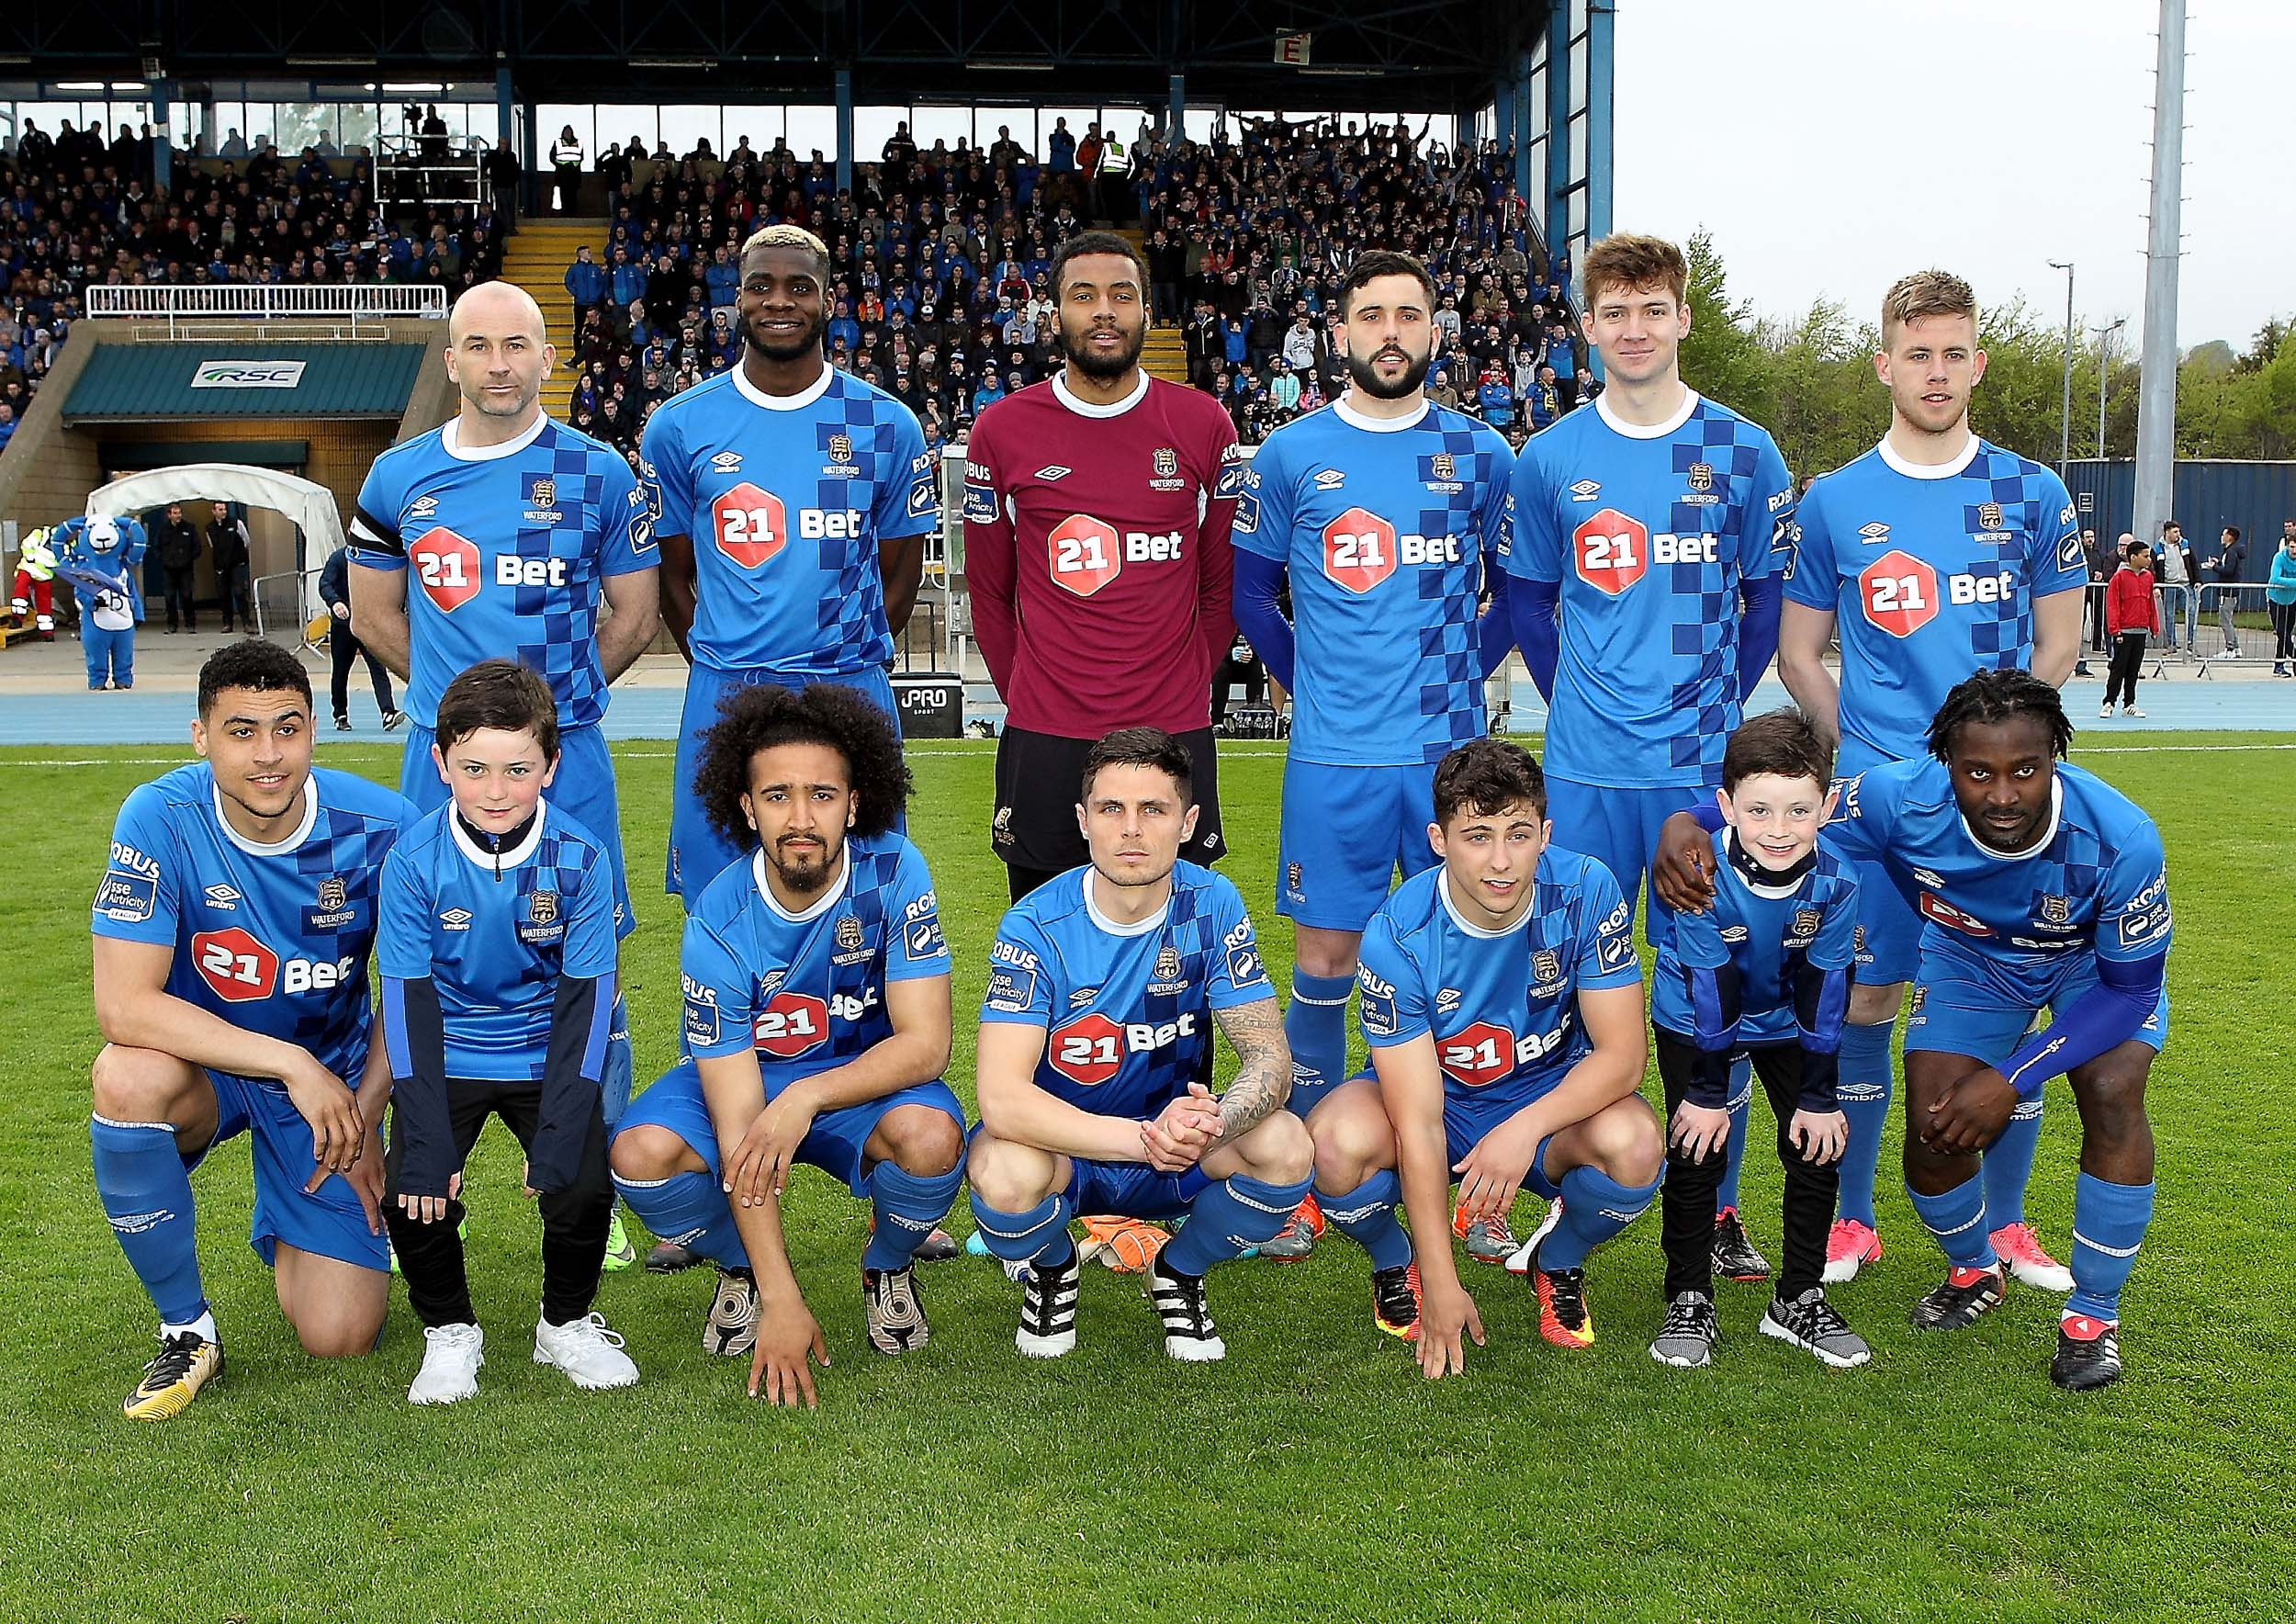 Waterford FC hoping to bounce back with a victory this evening as Limerick roll into town